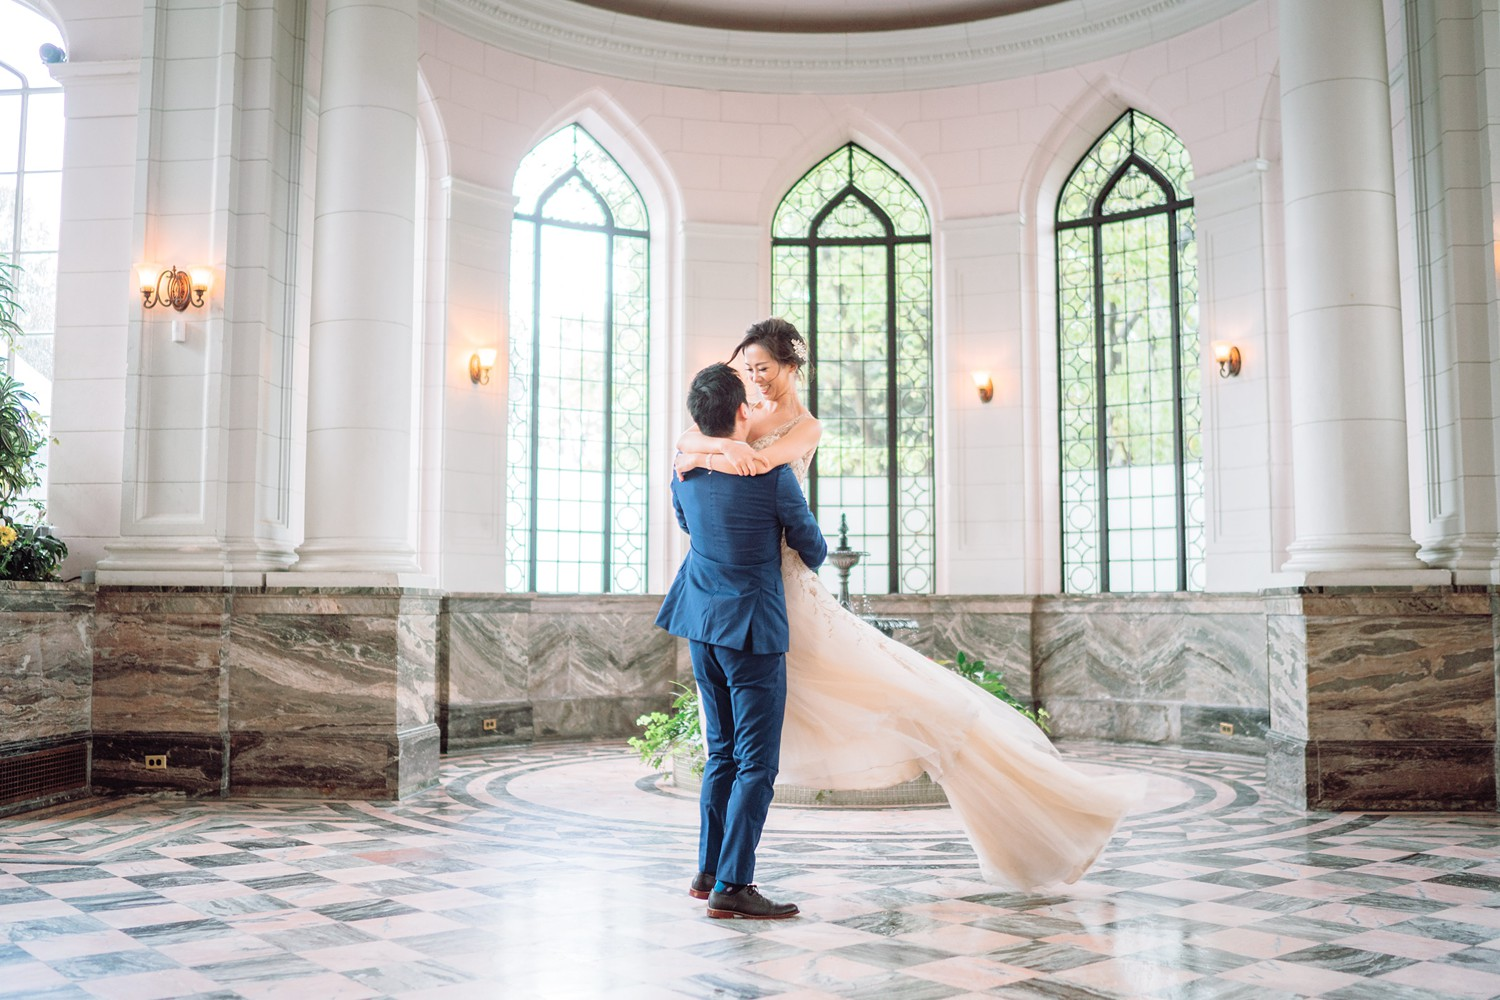 Bride and Groom at Castle in Observatory Casa Loma Wedding Toronto Wedding Photographer